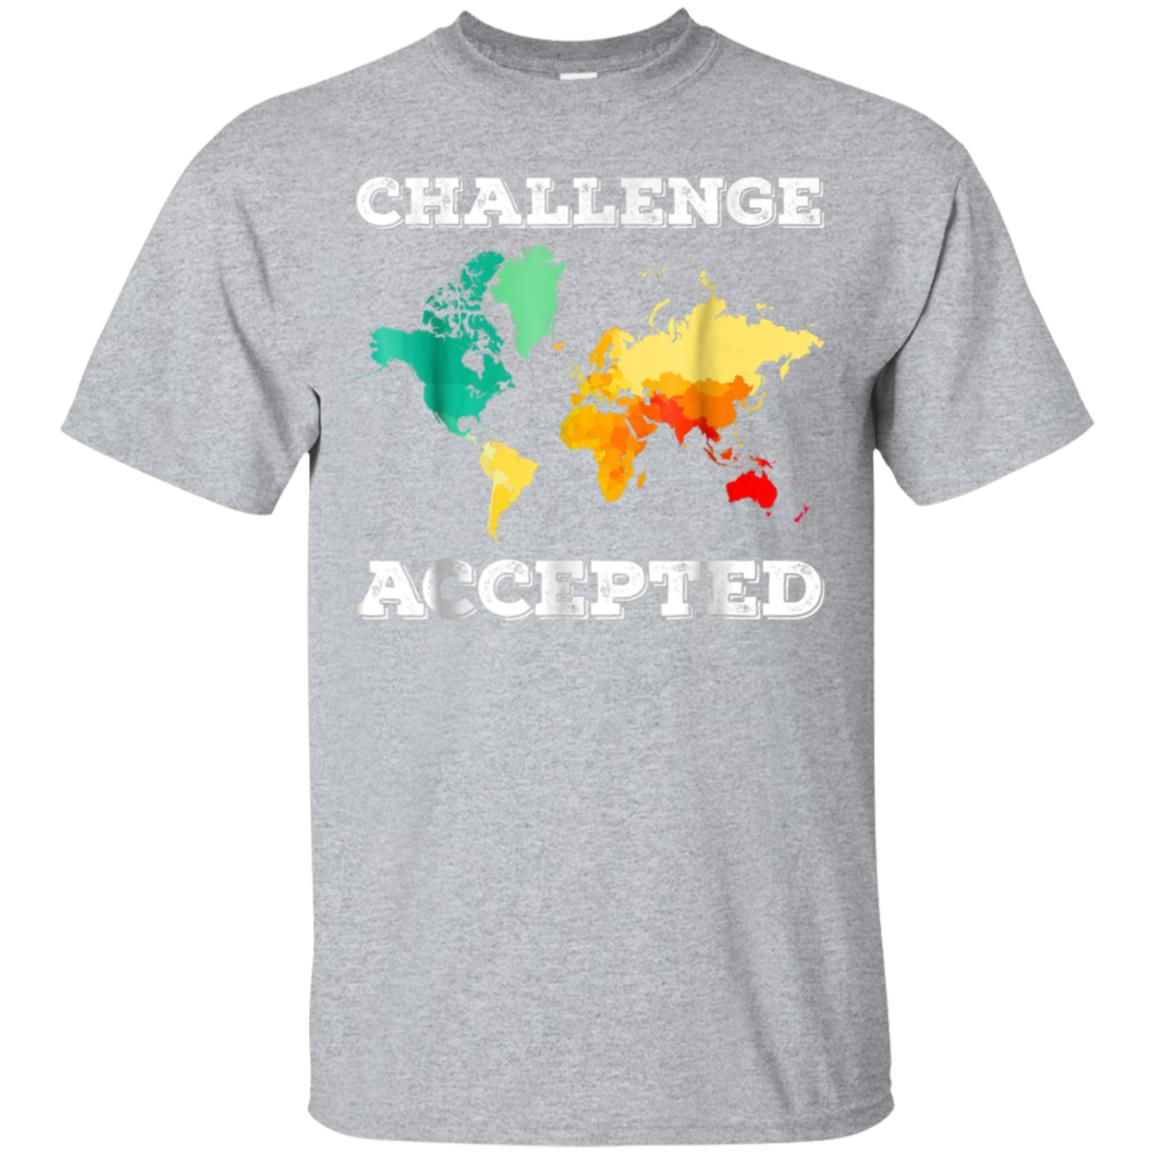 Challenge Accepted Map T Shirt  Travel World Traveler Shirt 99promocode